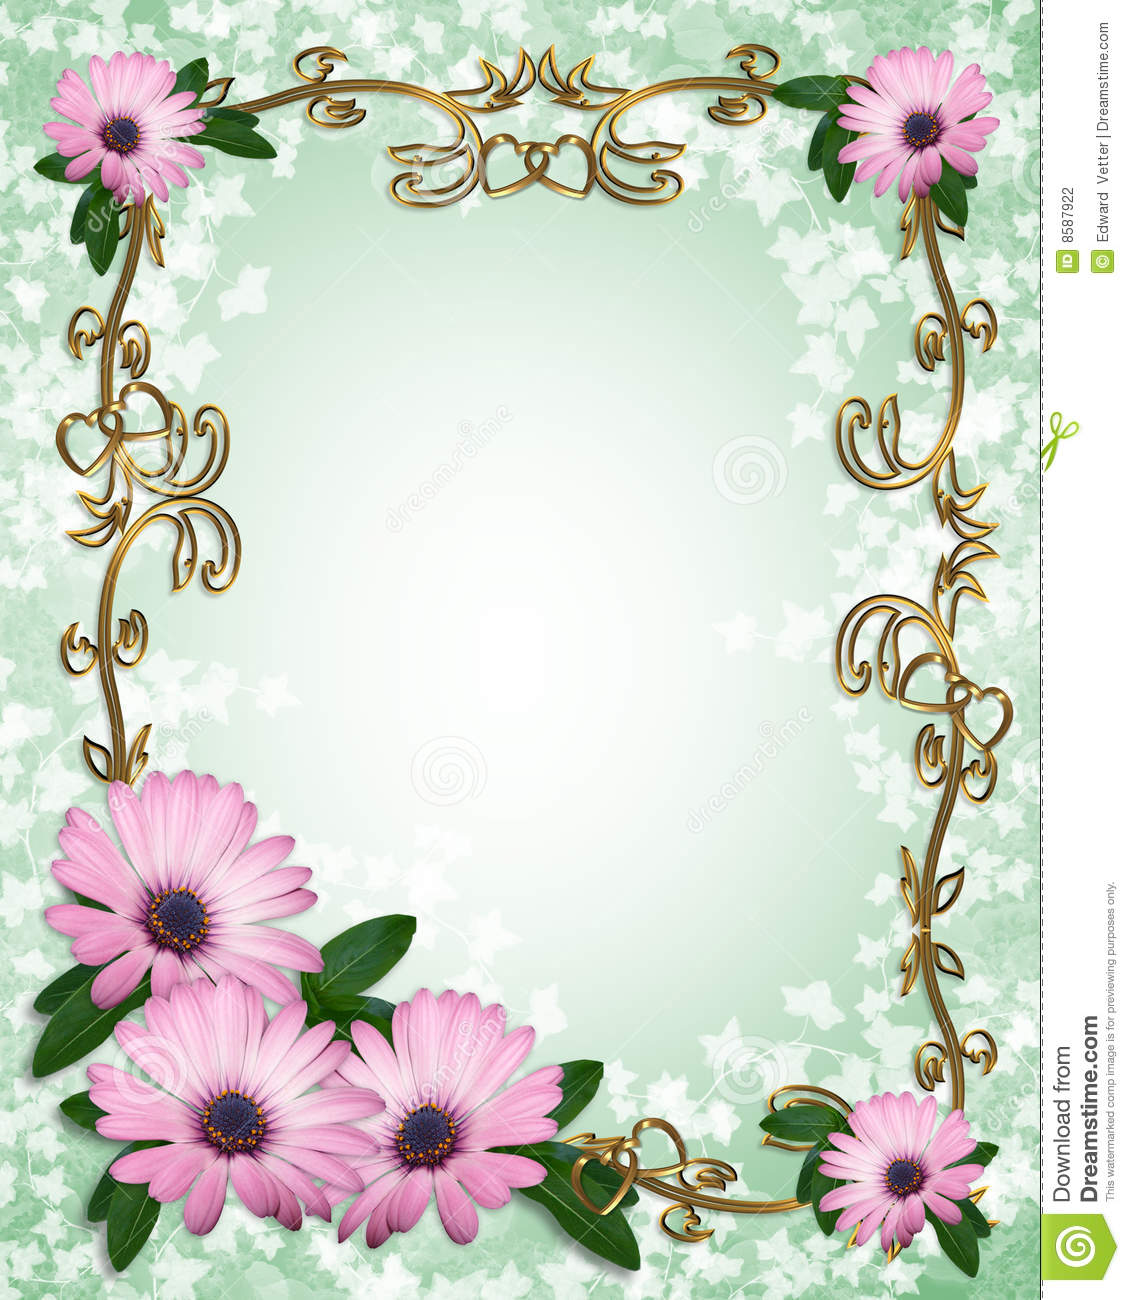 Daisy Border Template Stock Photography - Image: 8587922